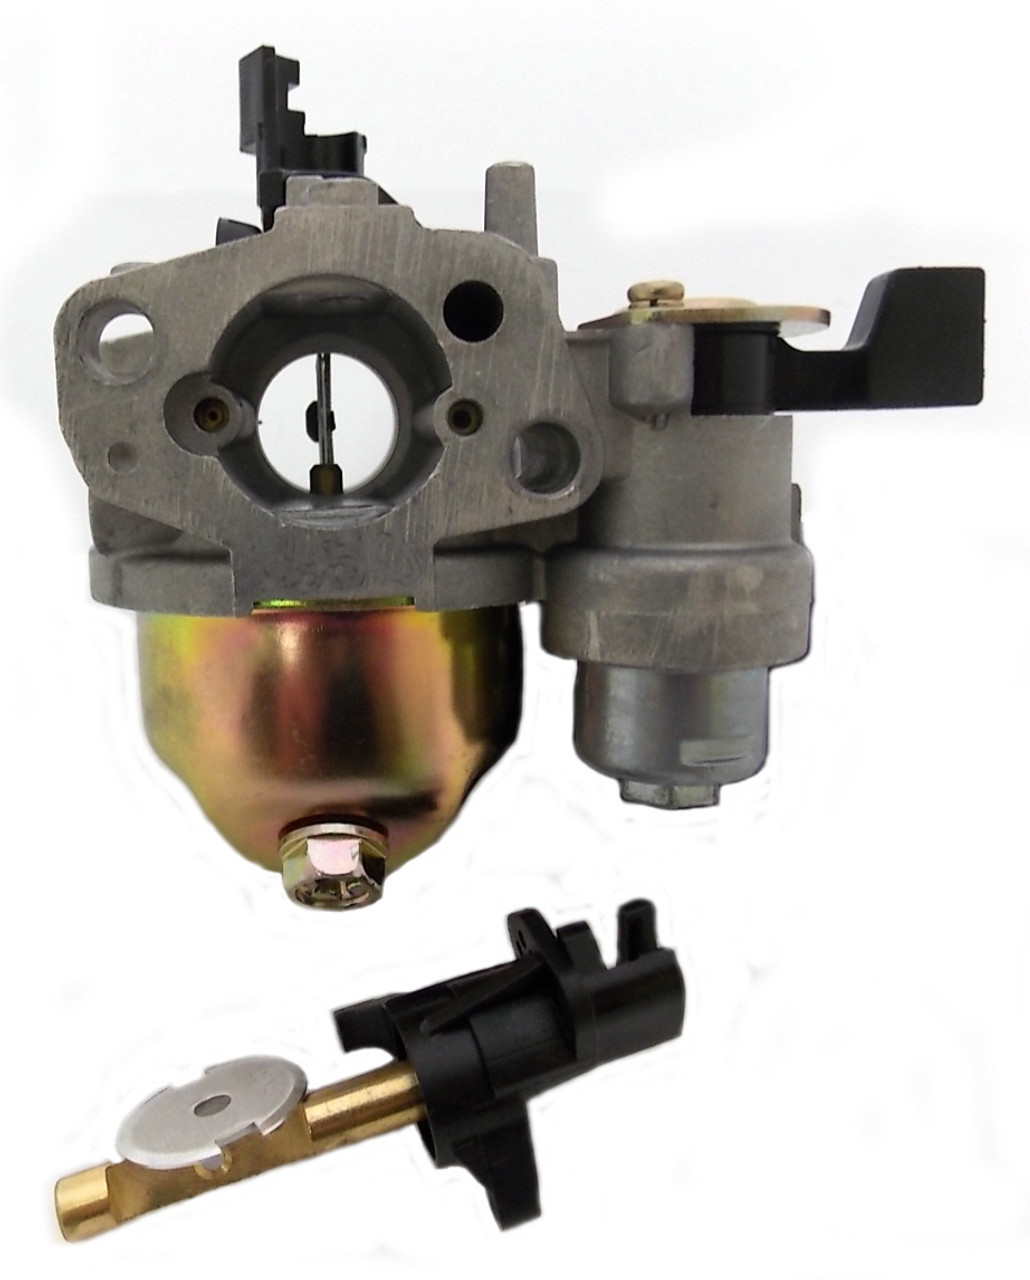 DJ-2229-G CNC Bored .675 Racing Carb for Gas